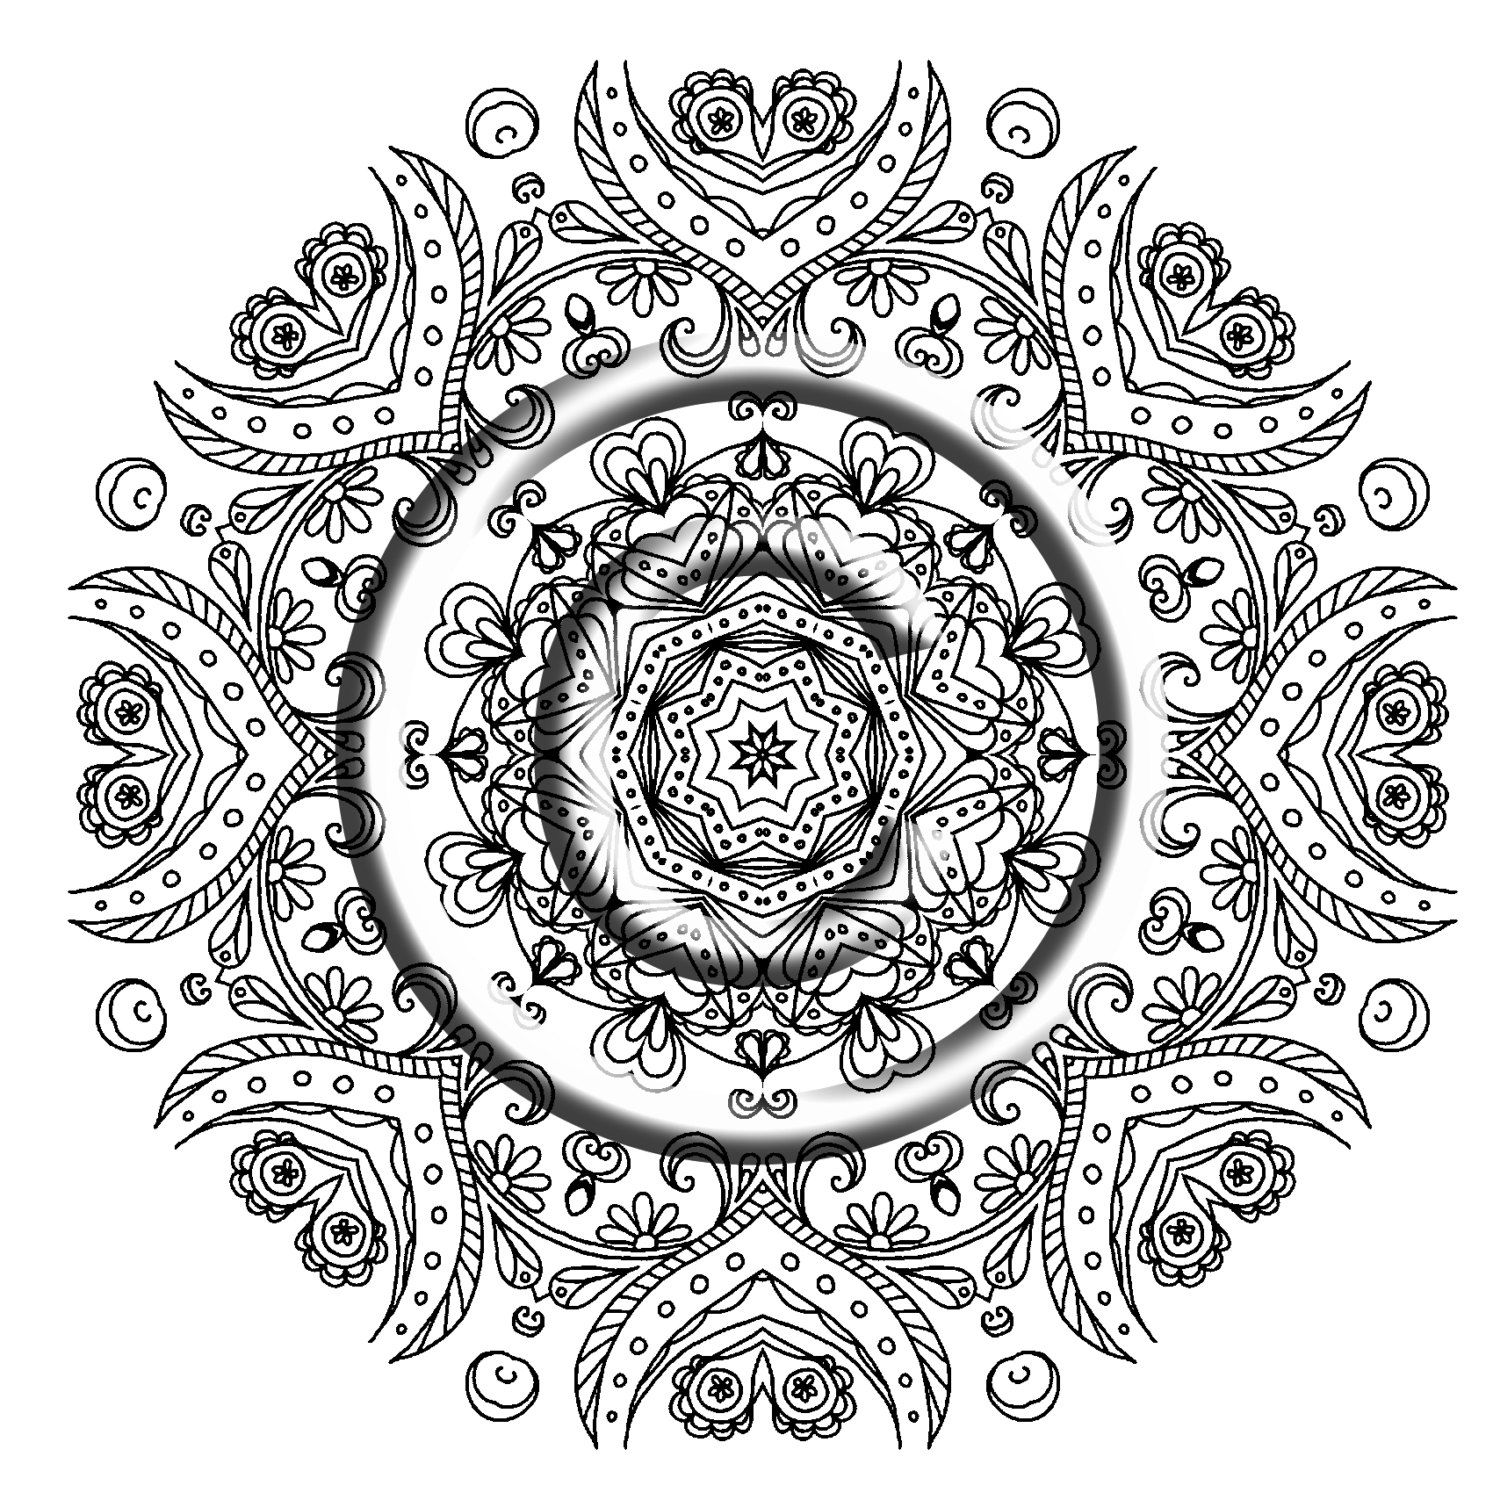 mandala hand coloring pages 50 original hand drawn mandala designs mandalas to color mandala coloring hand pages